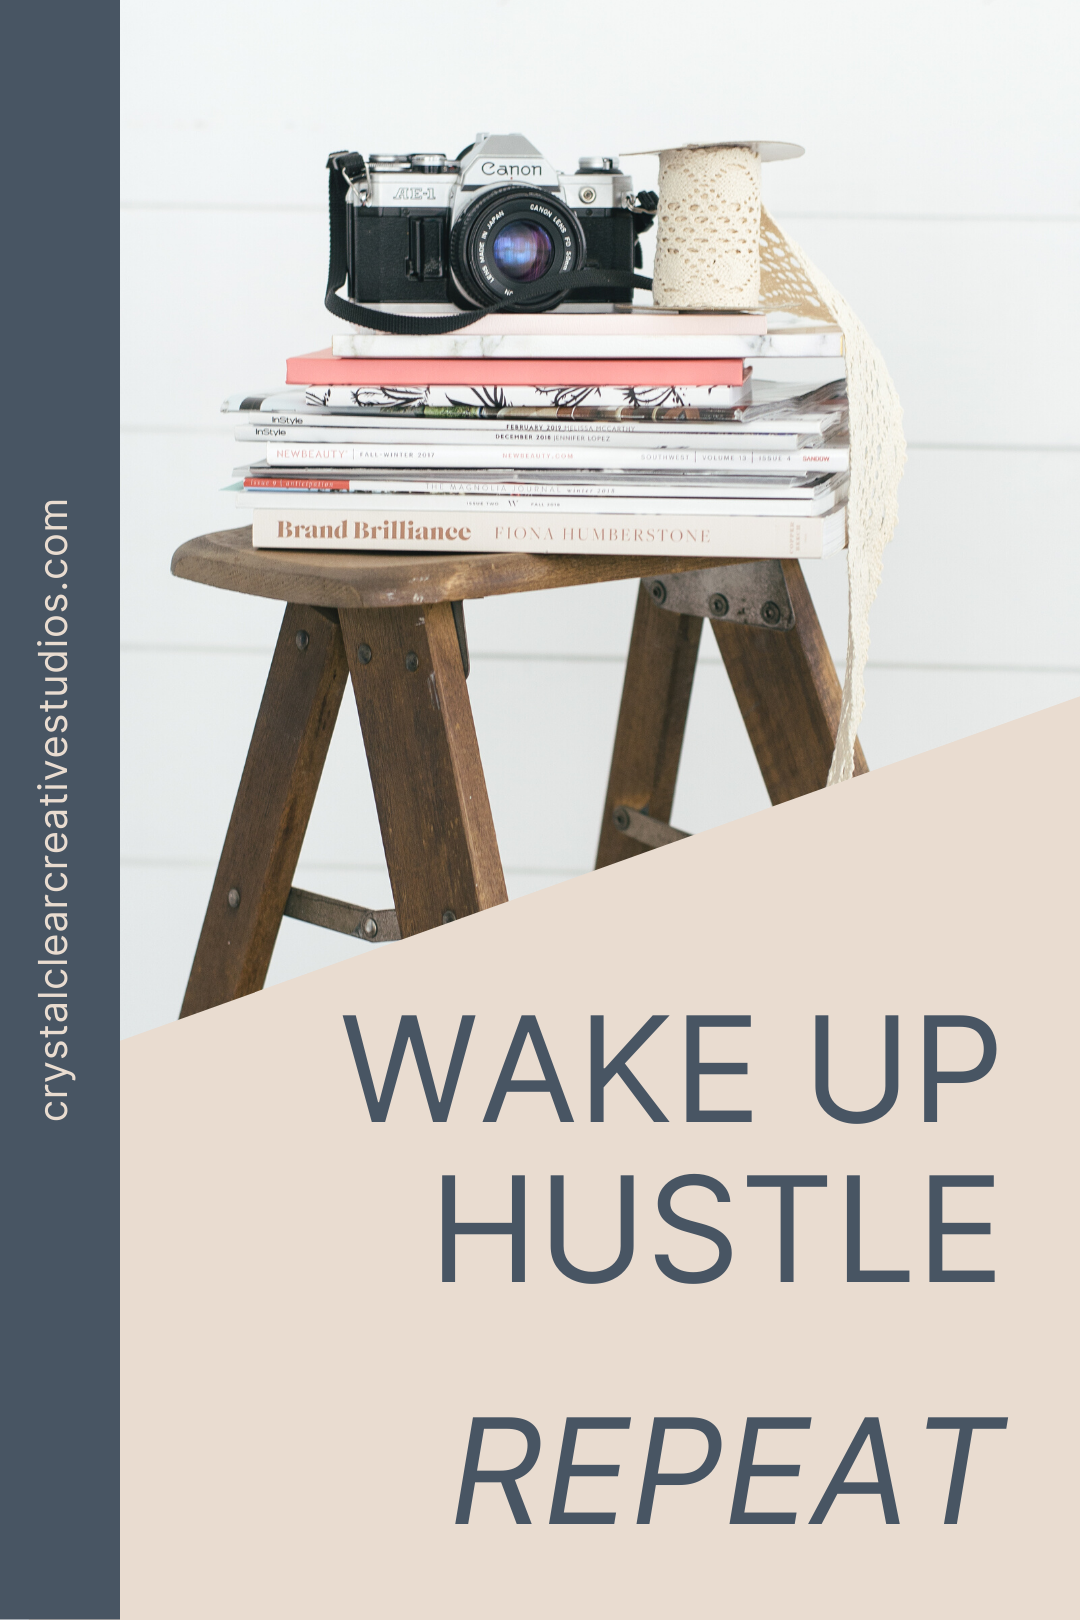 Wake up, hustle, repeat.